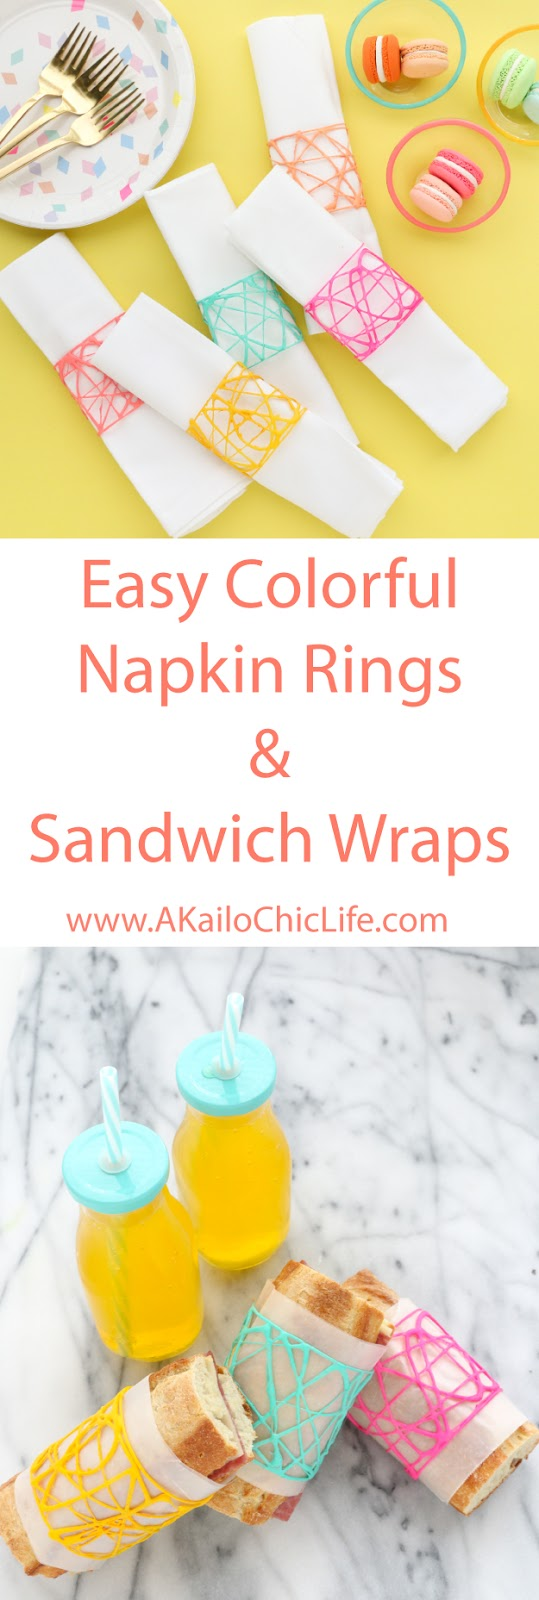 DIY Colorful and Inexpensive napkin rings and sandwich wraps using hot glue! Hot Glue crafts - Summer - party idea - party food - colorful - custom color - custom party idea - summer party - craft idea